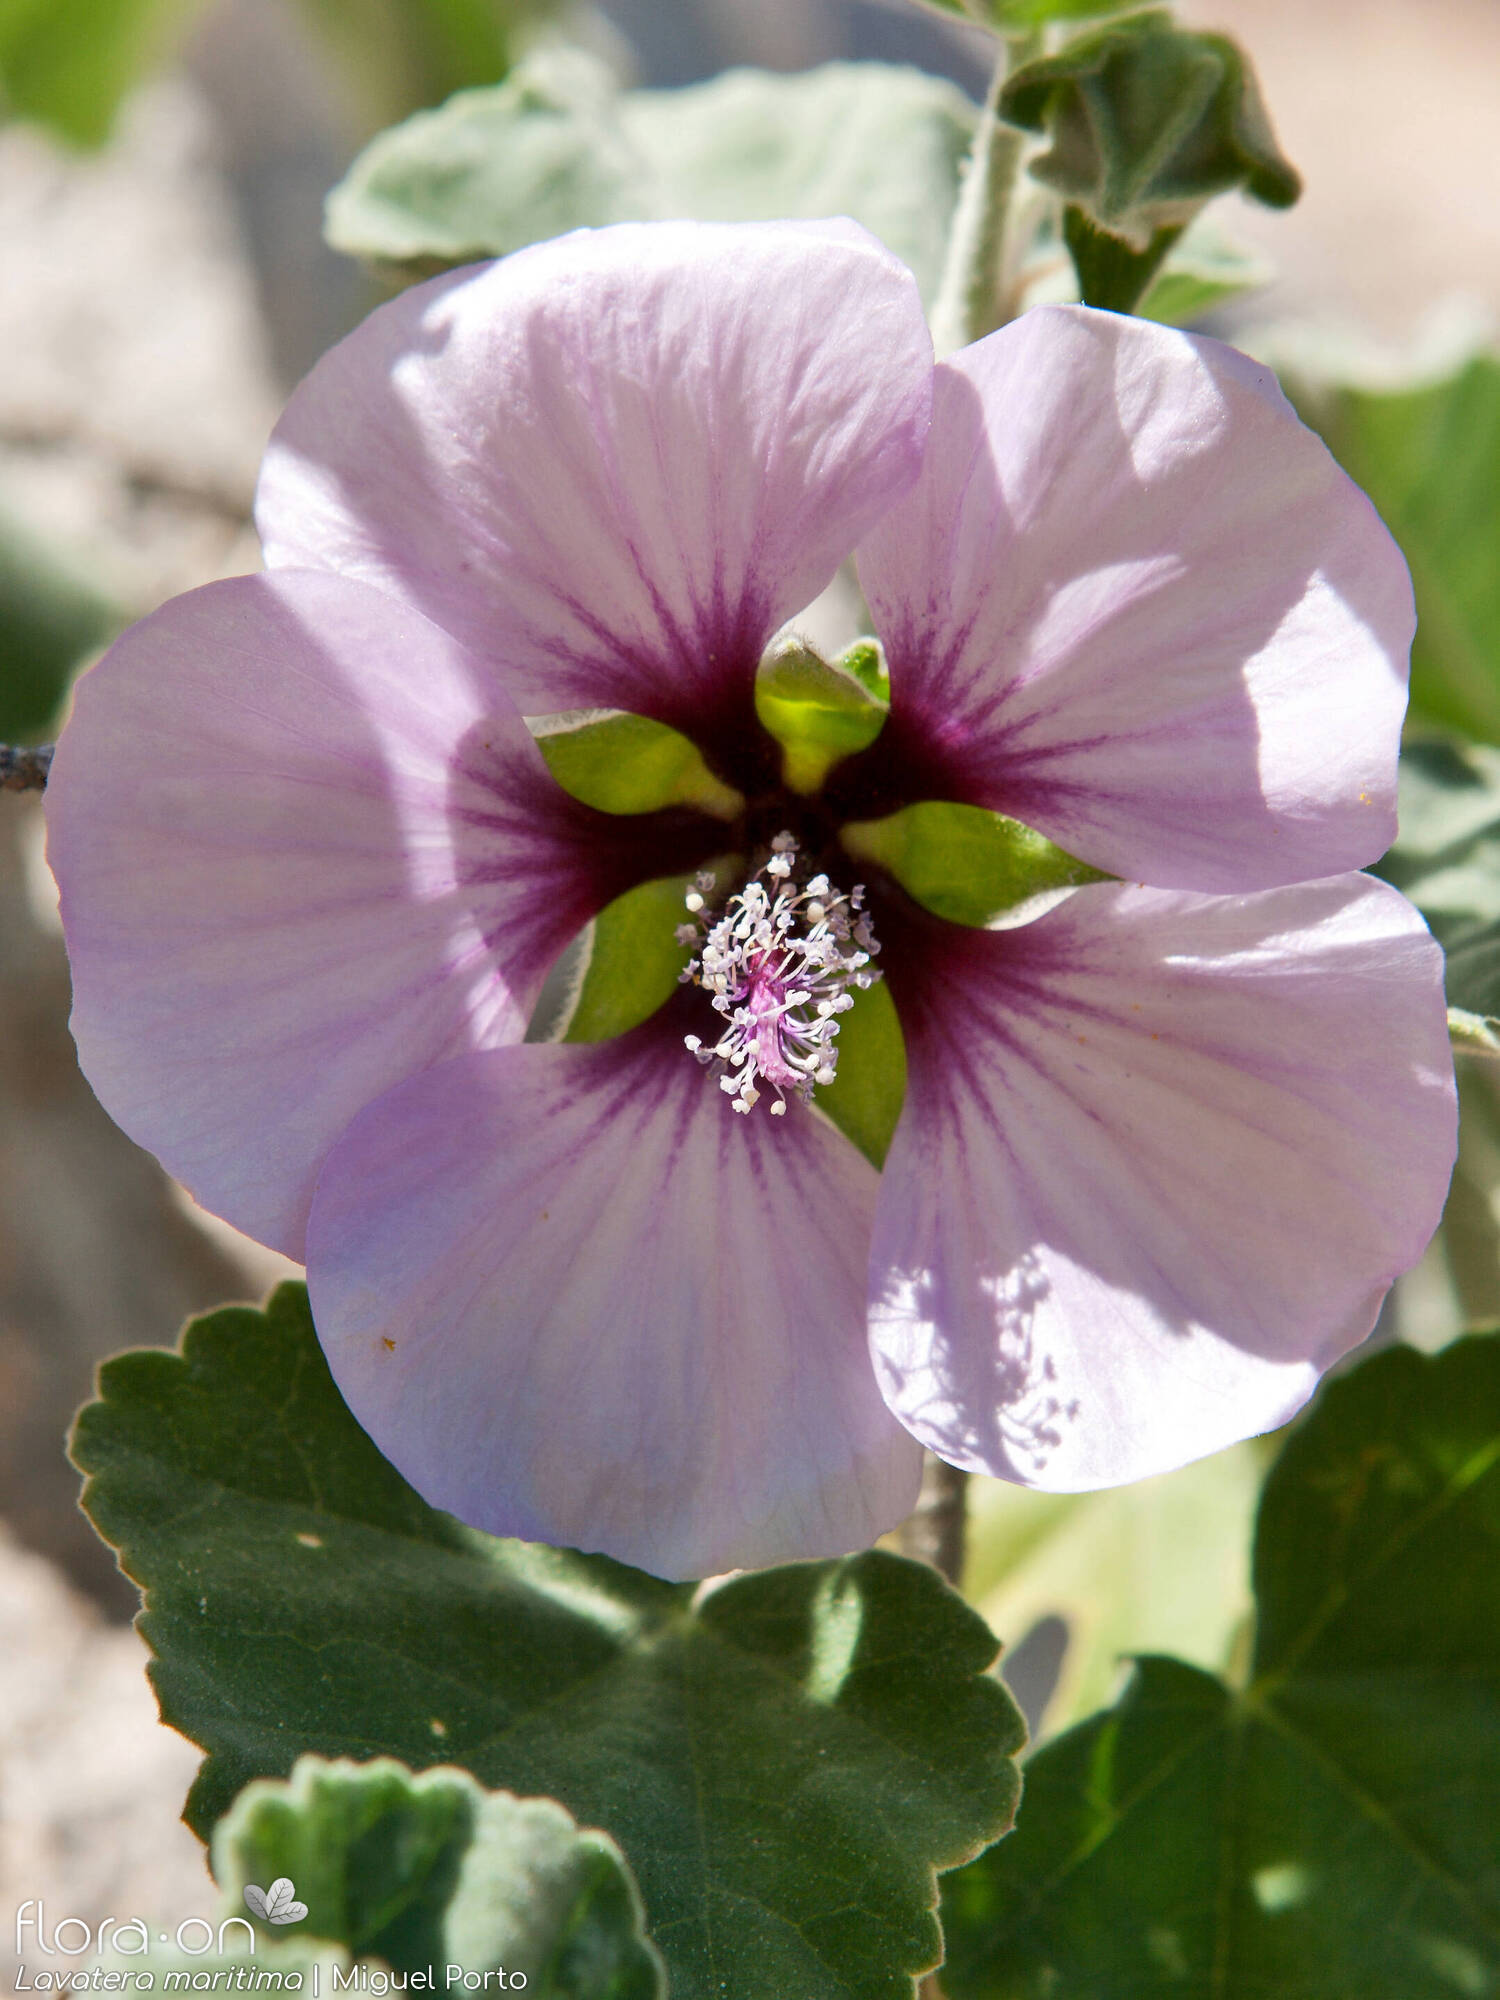 Lavatera maritima - Flor (close-up) | Miguel Porto; CC BY-NC 4.0